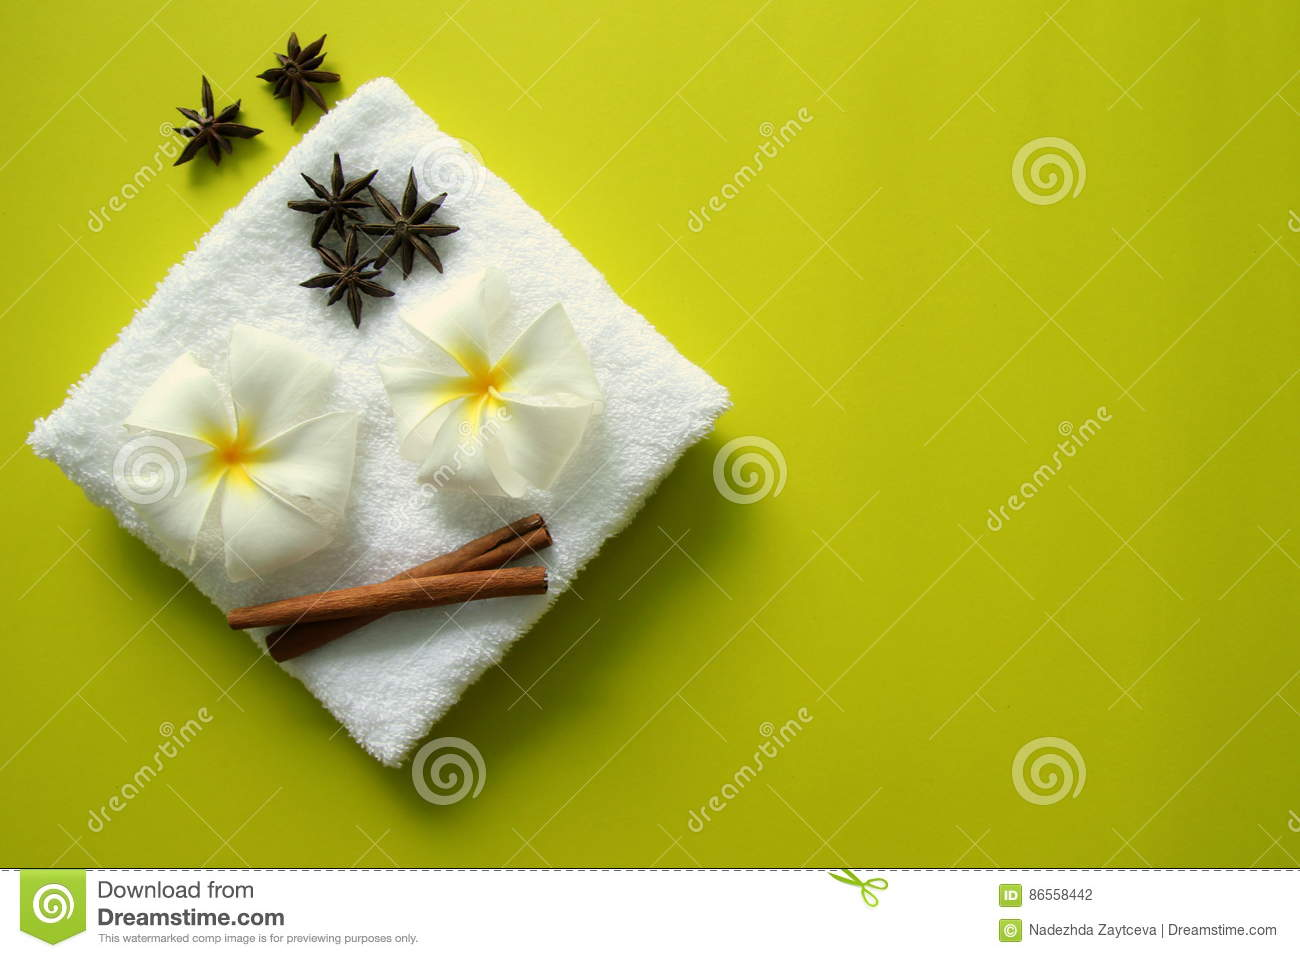 White Towel With Flowers Of Plumeria With Stars Of Anise And